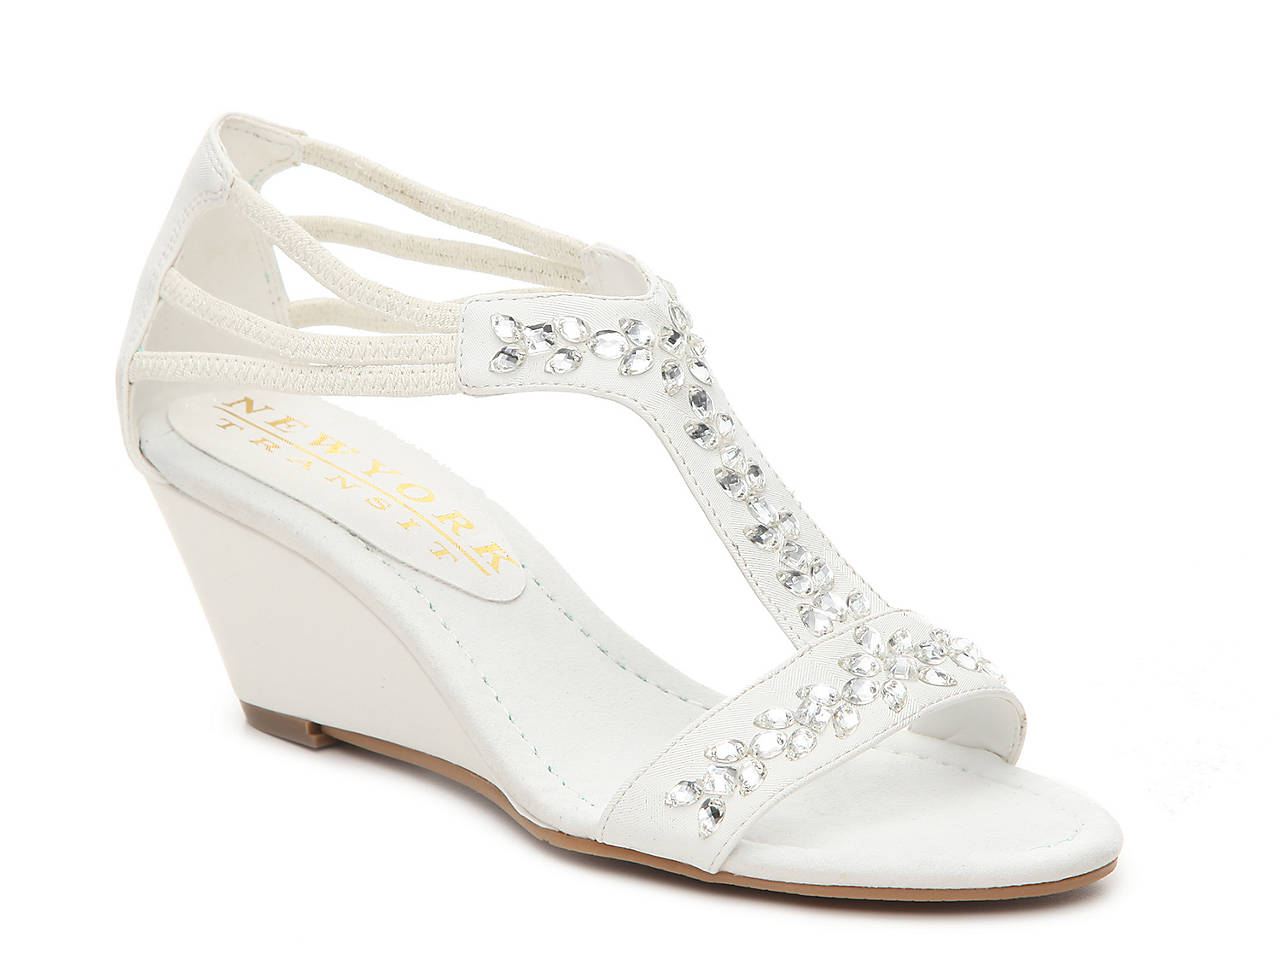 New York Transit Bring A Date ... Women's Wedge Sandals factory outlet discount fashionable exclusive online cheap sale excellent buy cheap affordable dvr608